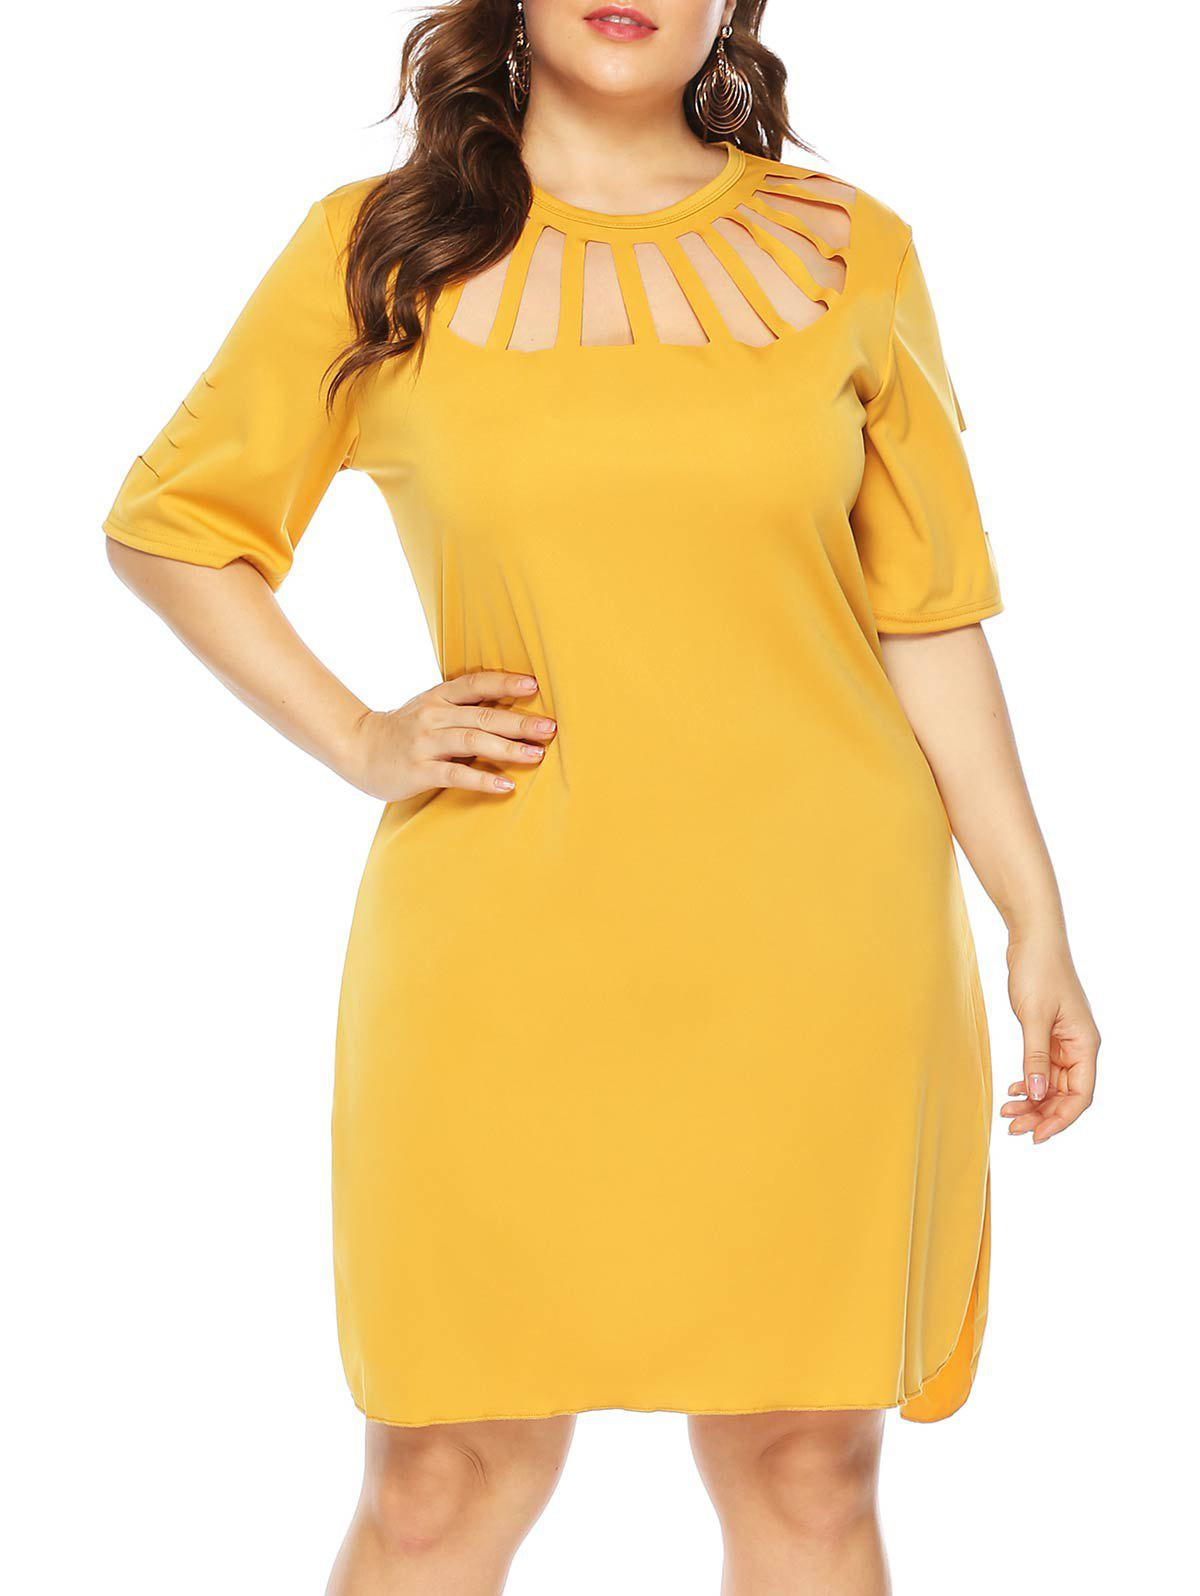 Cutout Short Sleeve Casual Plus Size Dress - RUBBER DUCKY YELLOW L